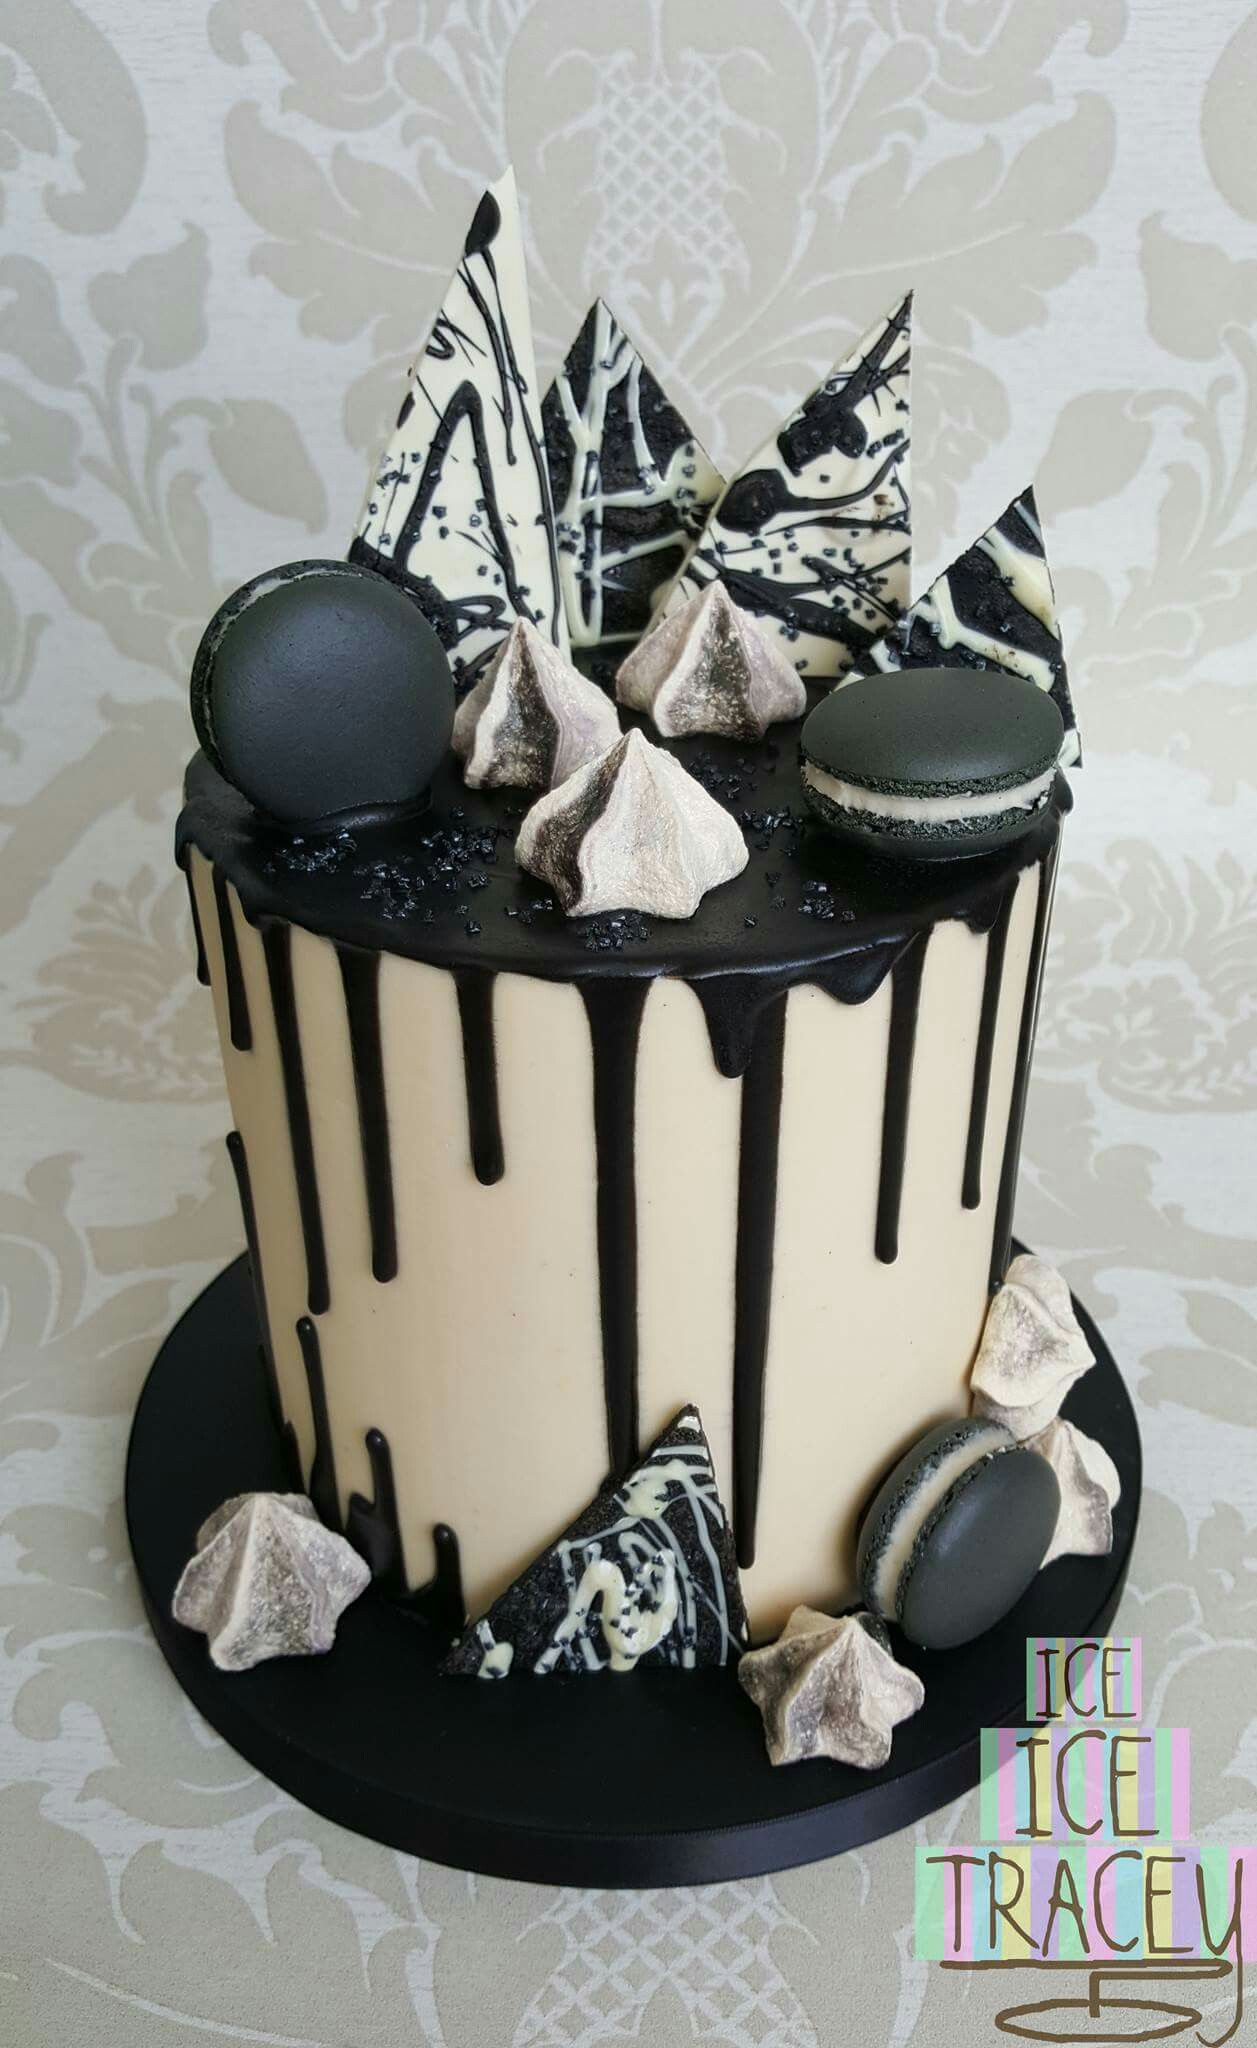 Wondrous Black And White Drip Cake 21St Birthday Cakes White Birthday Funny Birthday Cards Online Alyptdamsfinfo